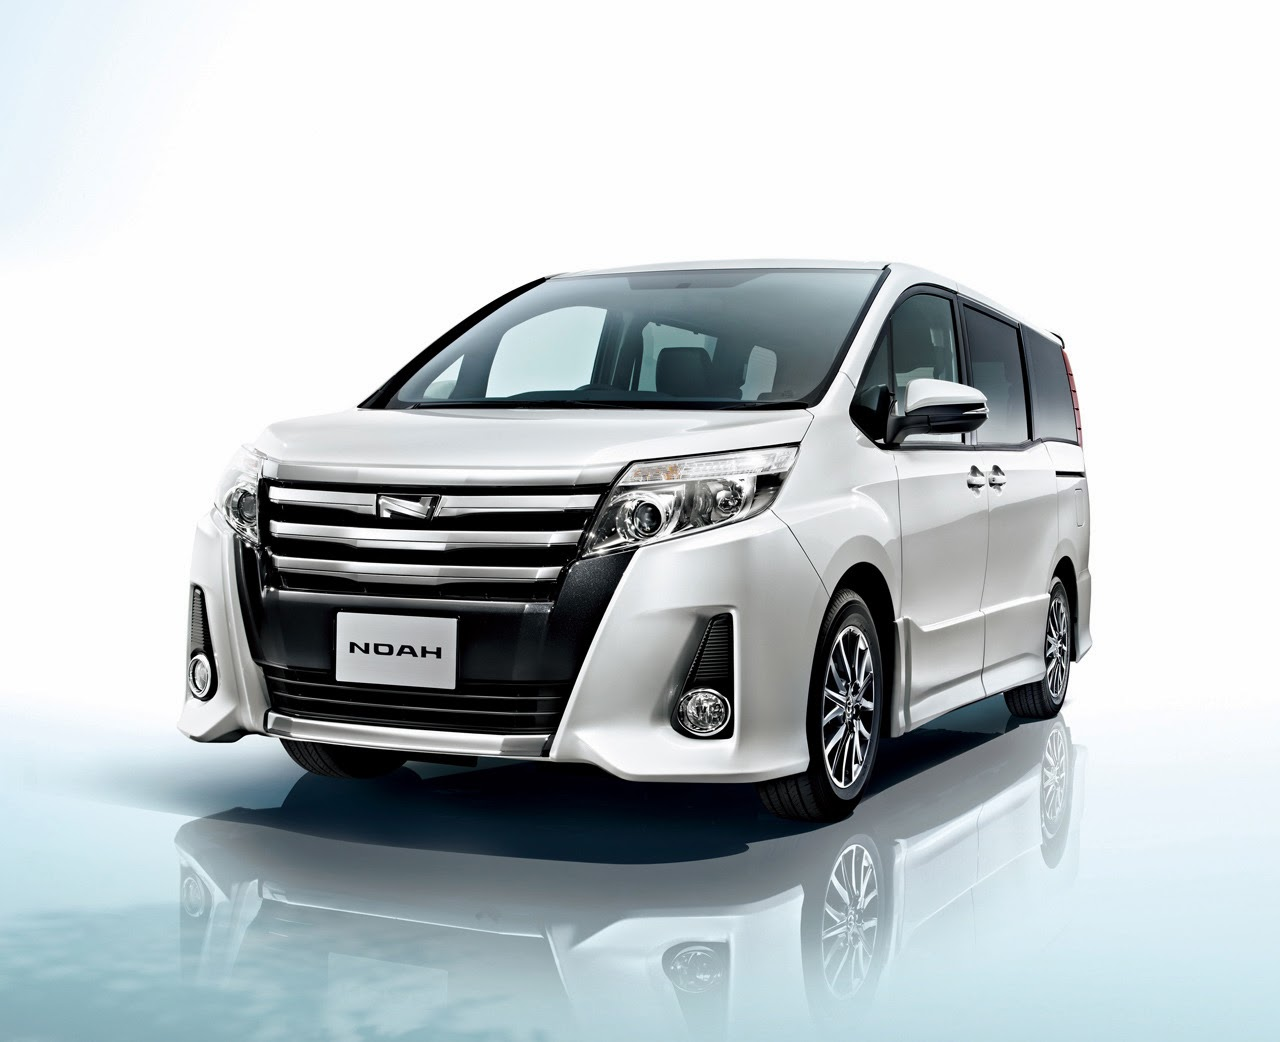 Toyota noah photo - 6